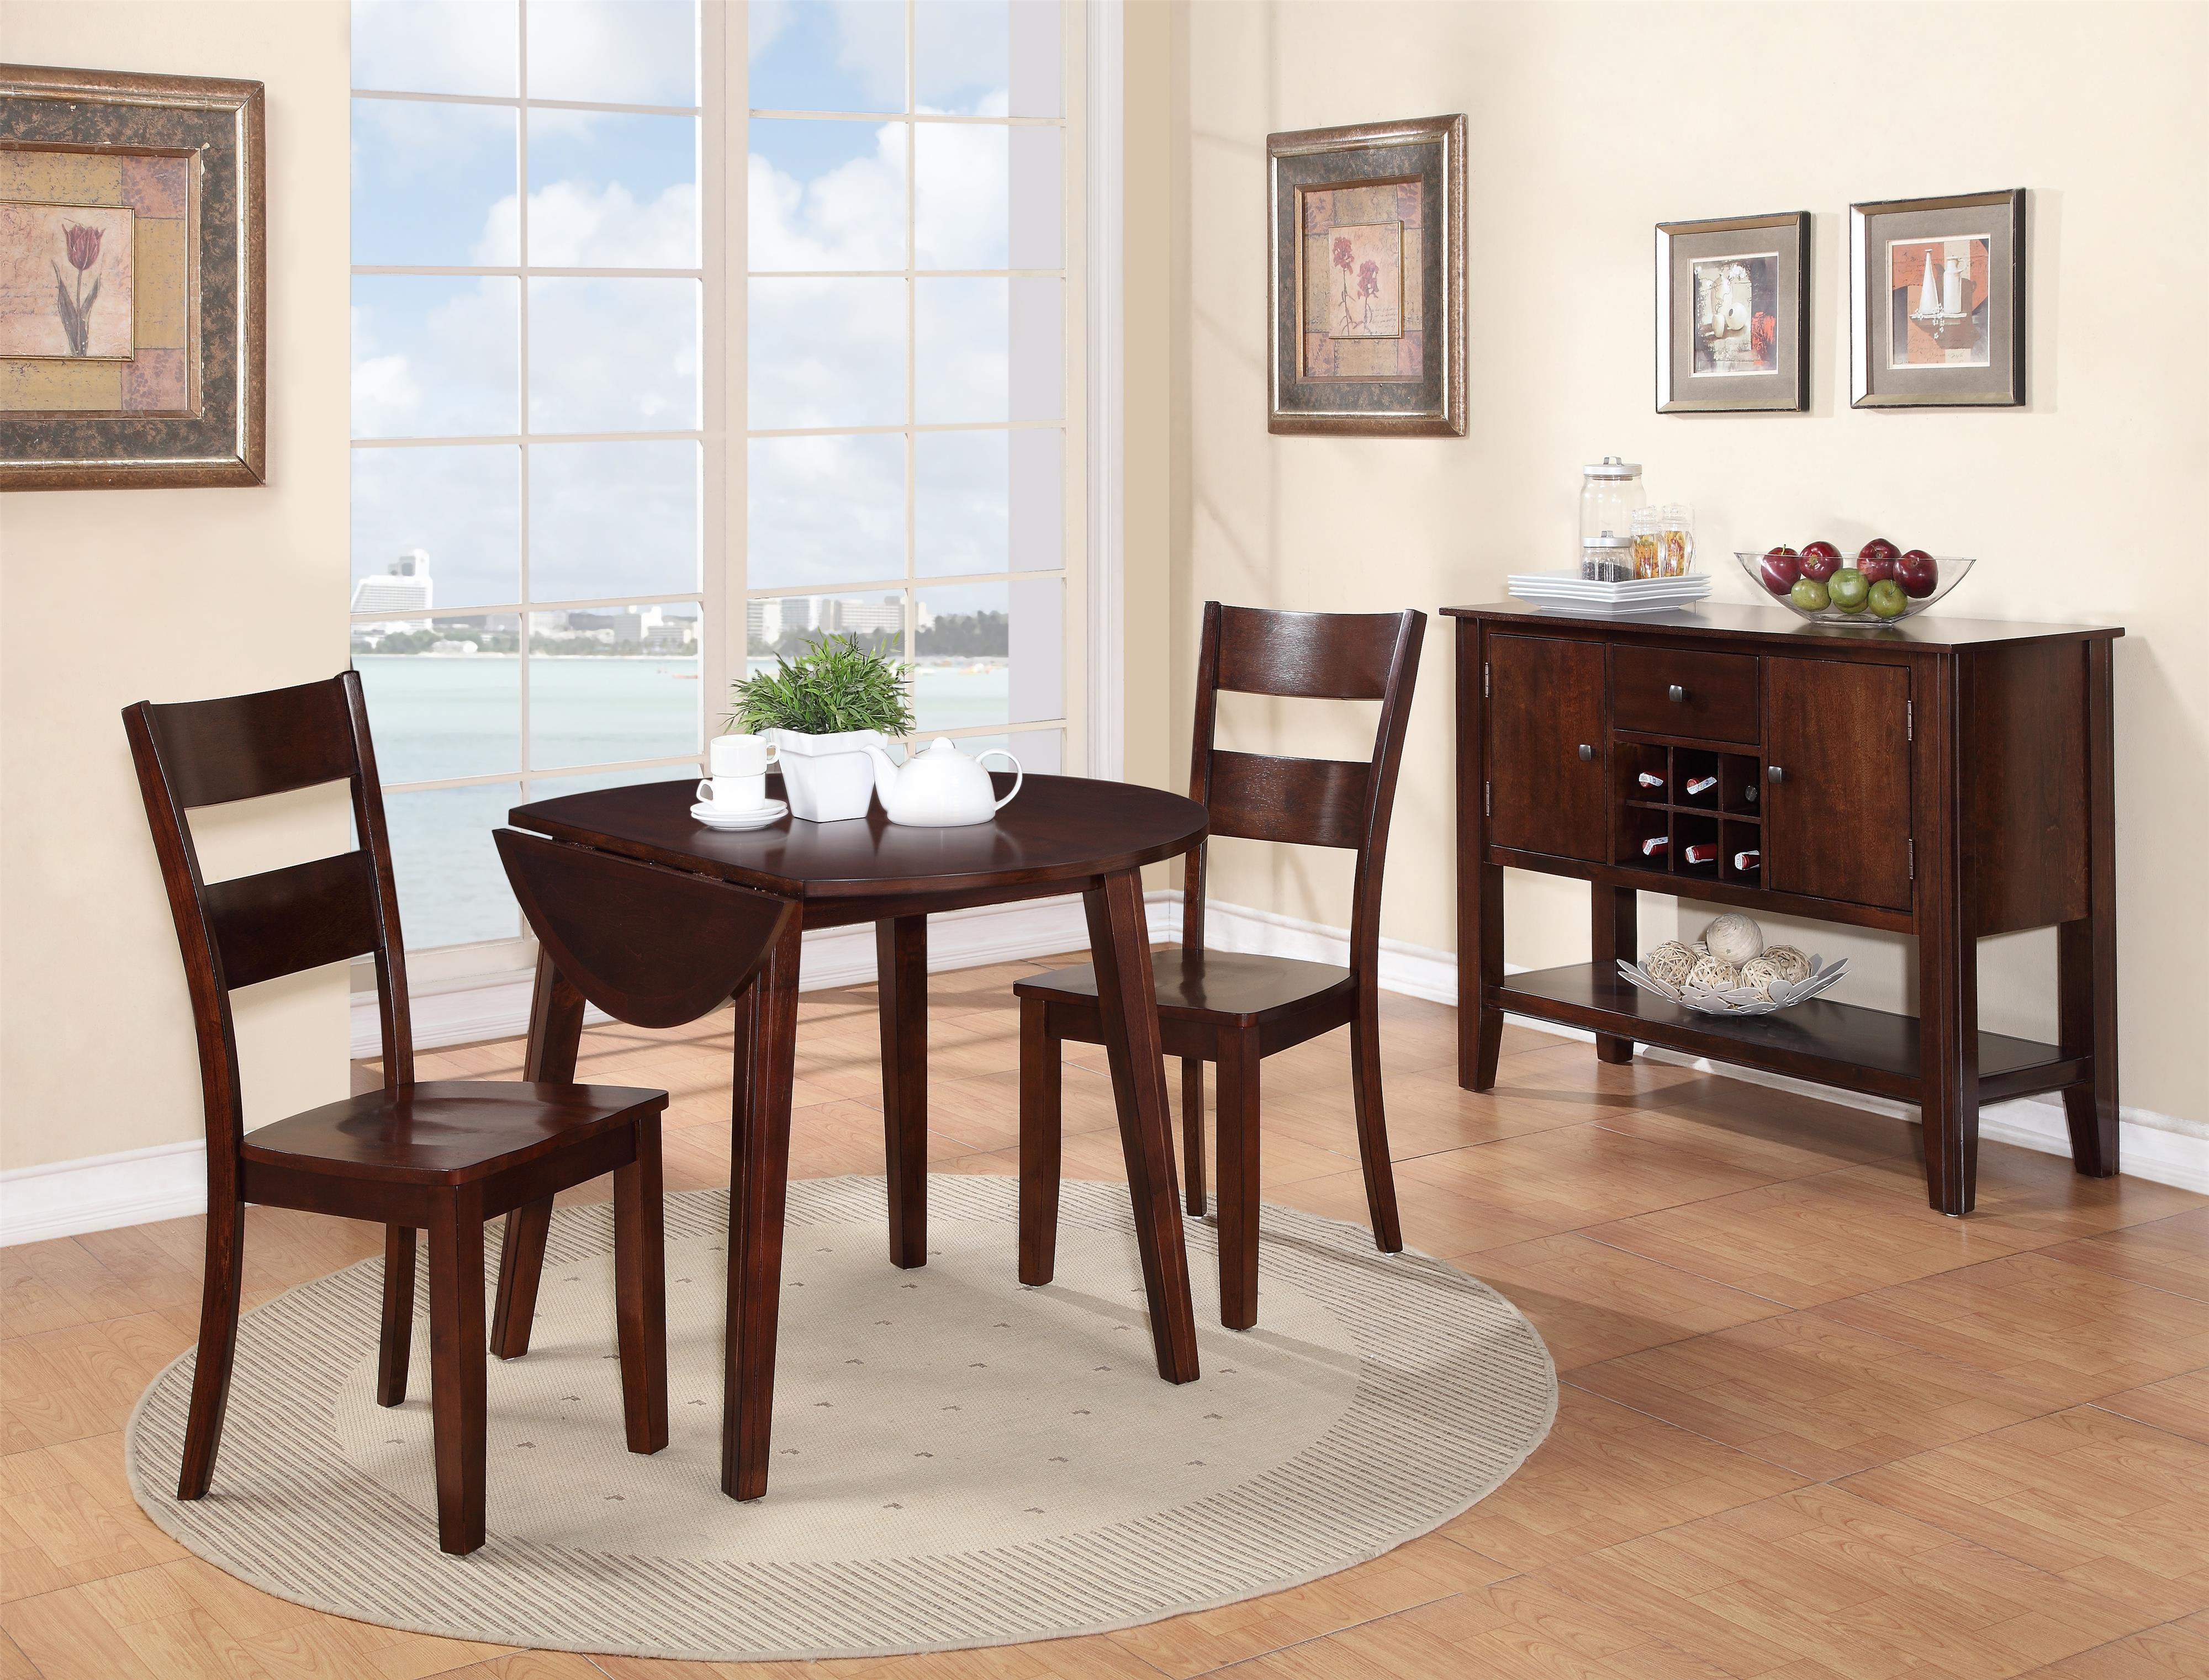 holland house 8203 3 piece dining set with drop leaf table l fish